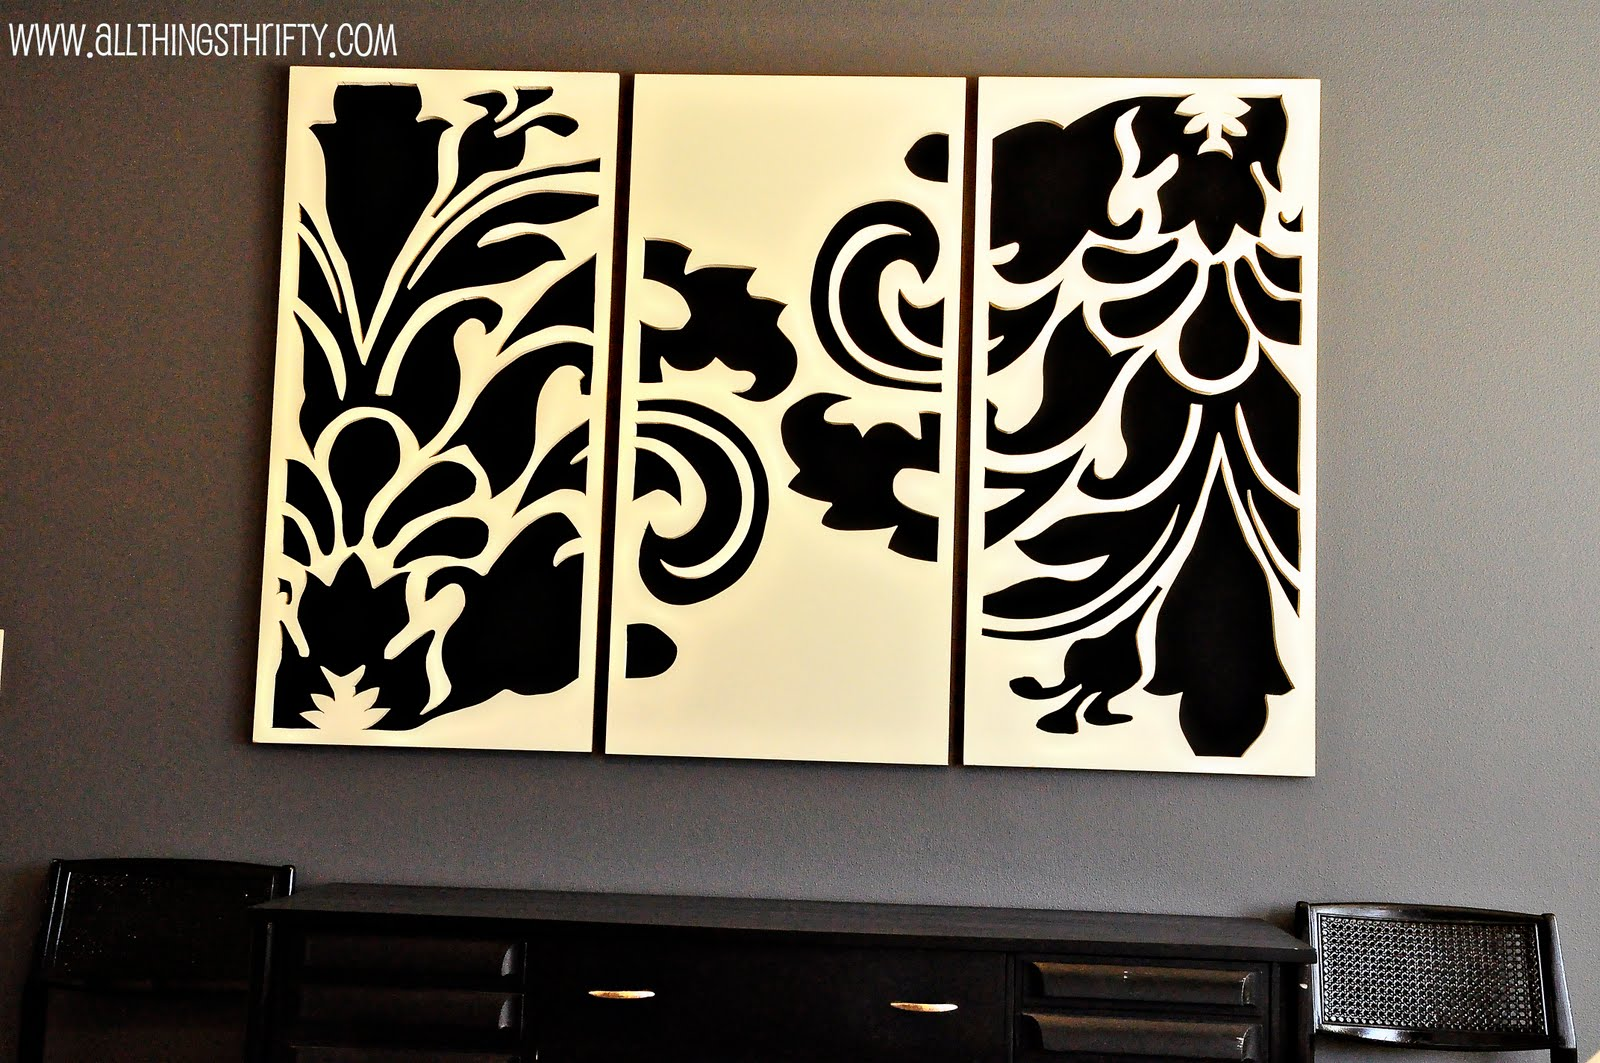 SYTYCD Week 7: Building MaterialsDecorative Wall Art